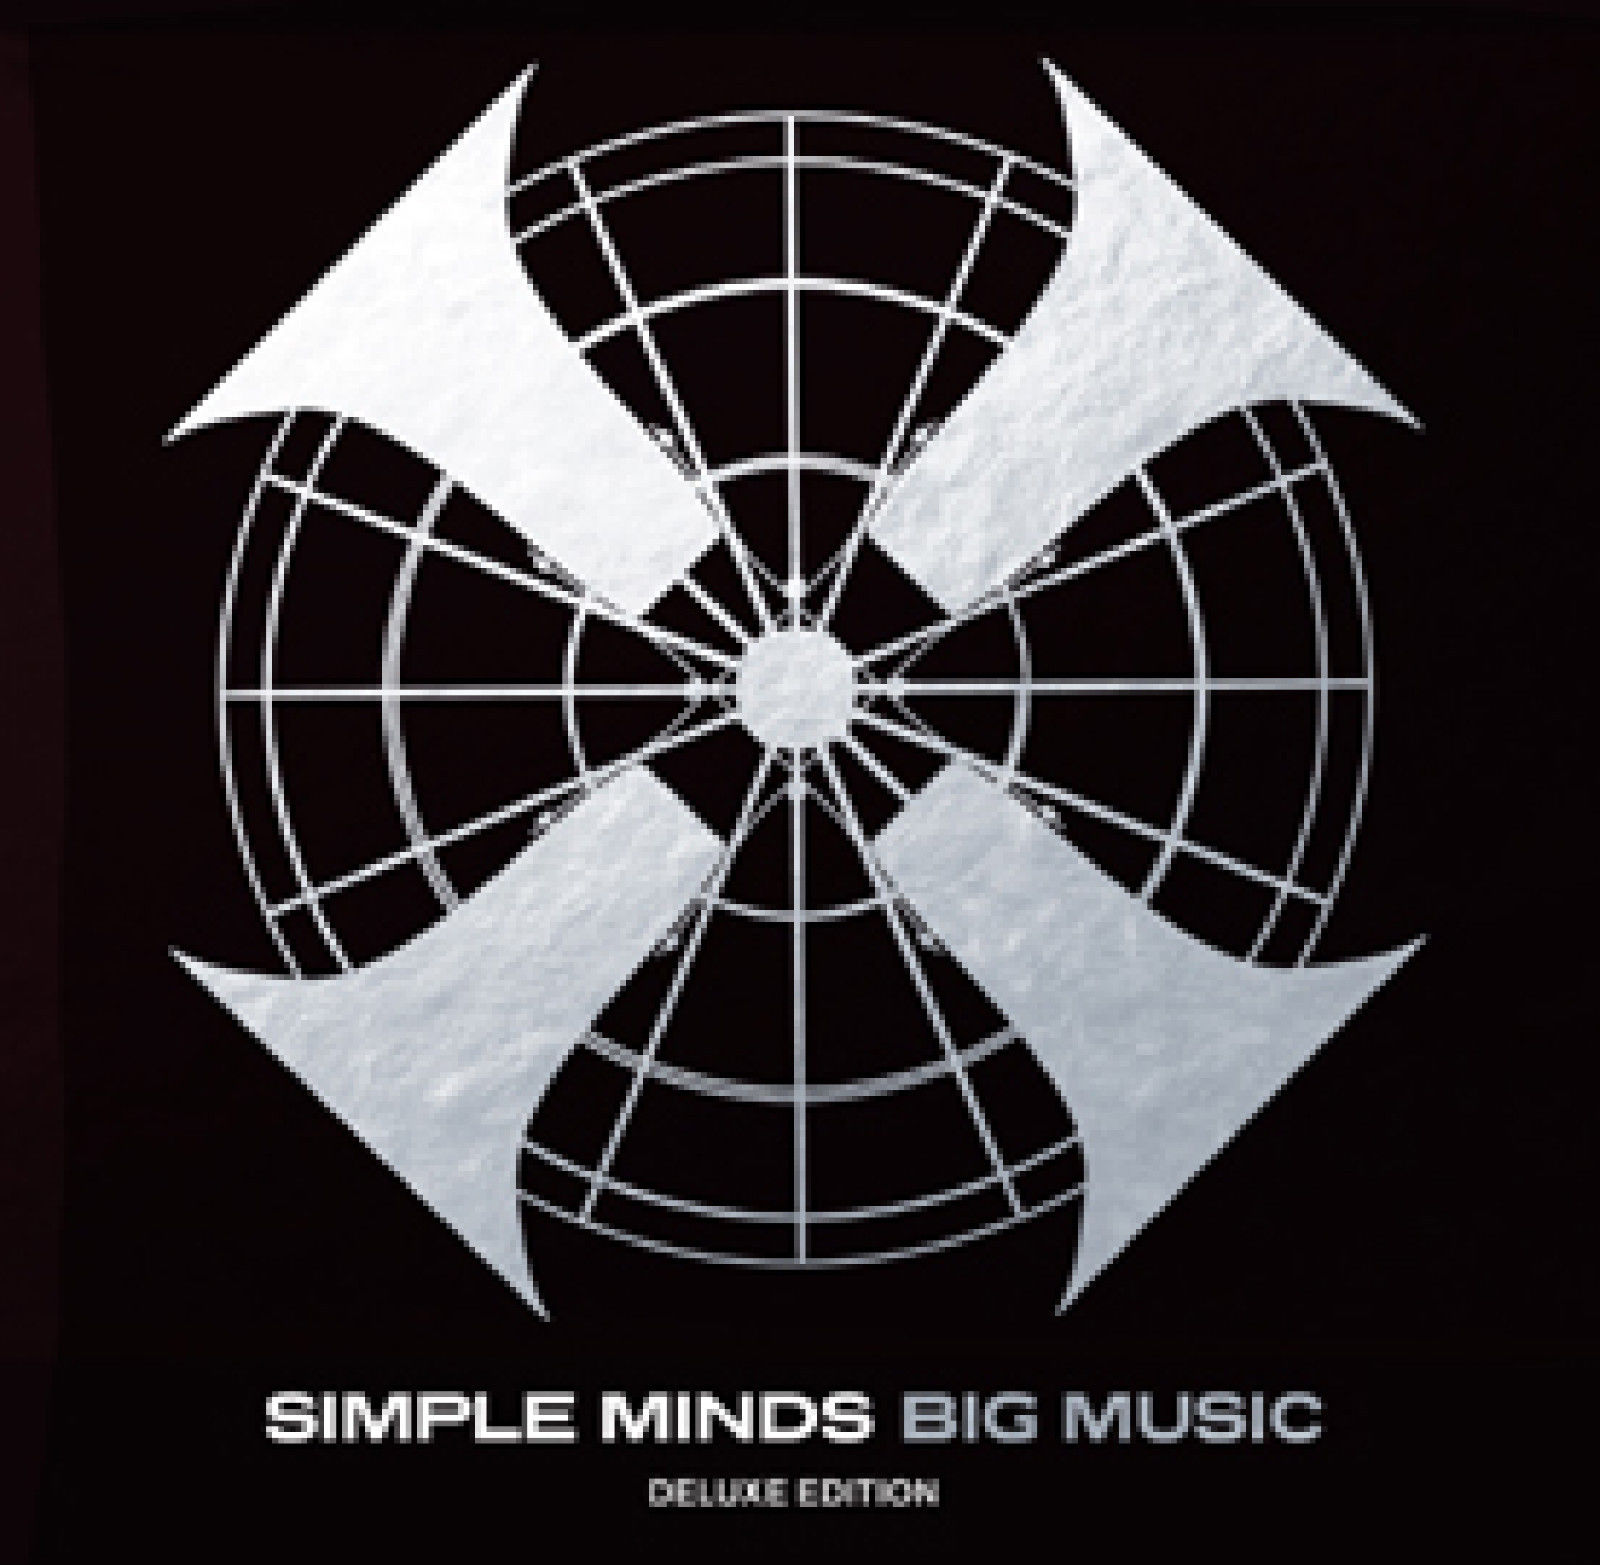 jaquettes3/Simple-Minds_Big-Music_Deluxe.jpg